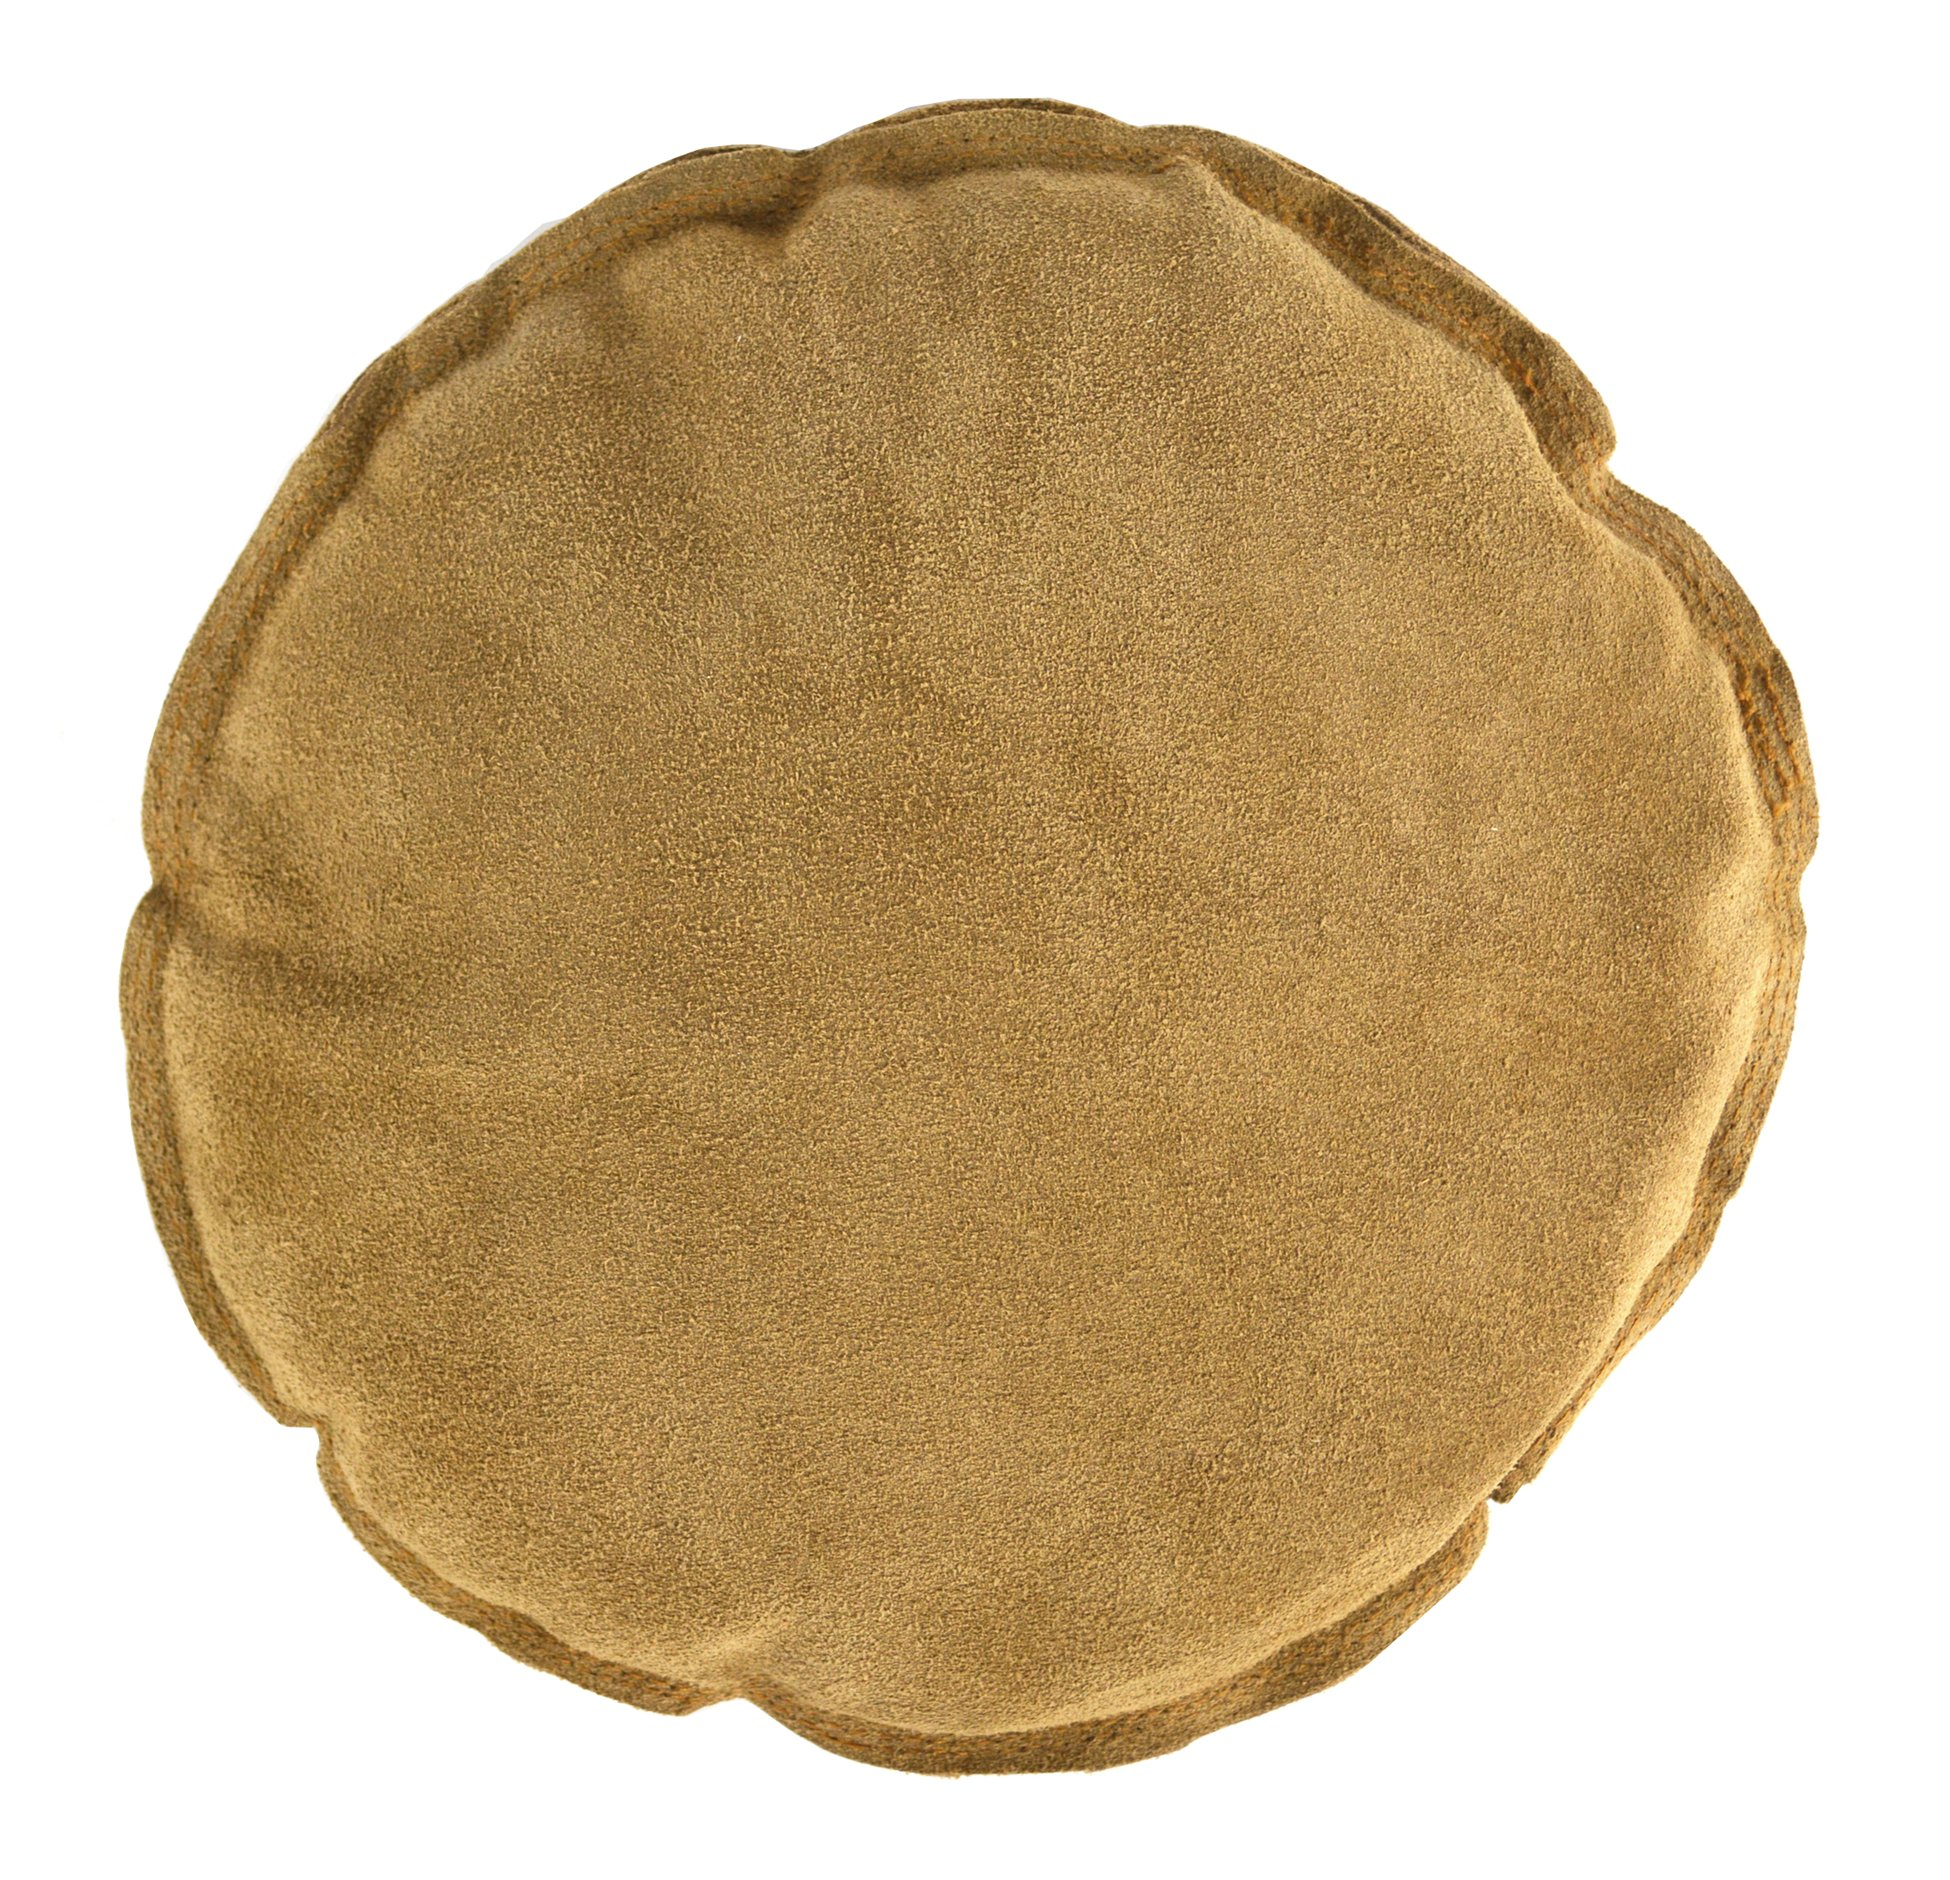 10'' Diameter Round Leather Leather Sandbag Cushion for Metal Dapping Stamping Hammering Chasing Forming Jewelry Tool